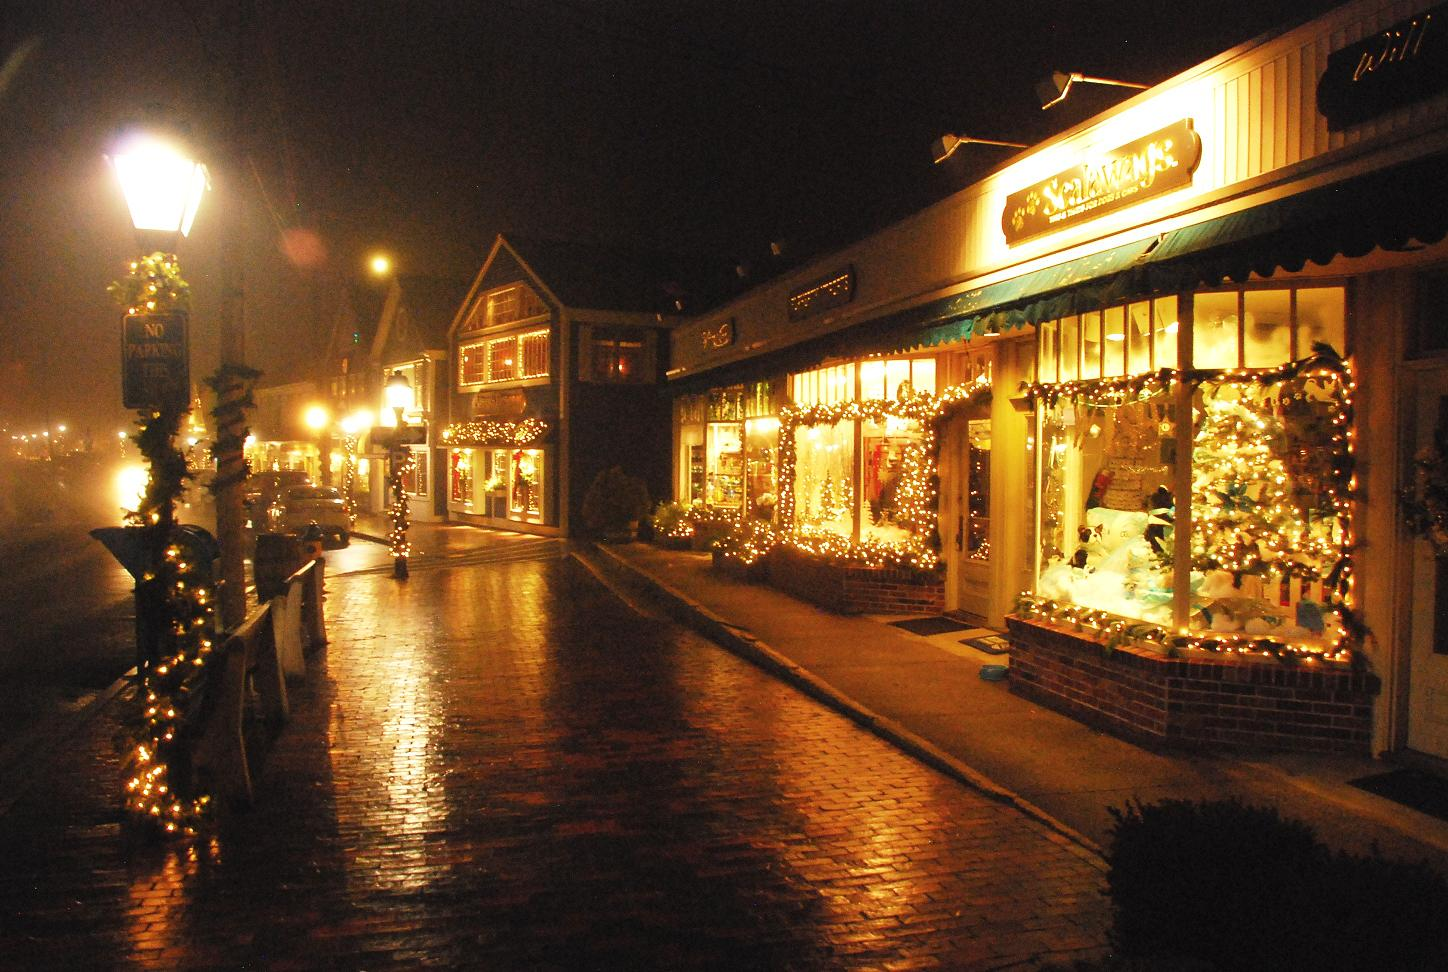 Christmas Prelude 2013, Kennebunkport, Maine | A Traveler's Photo Journal